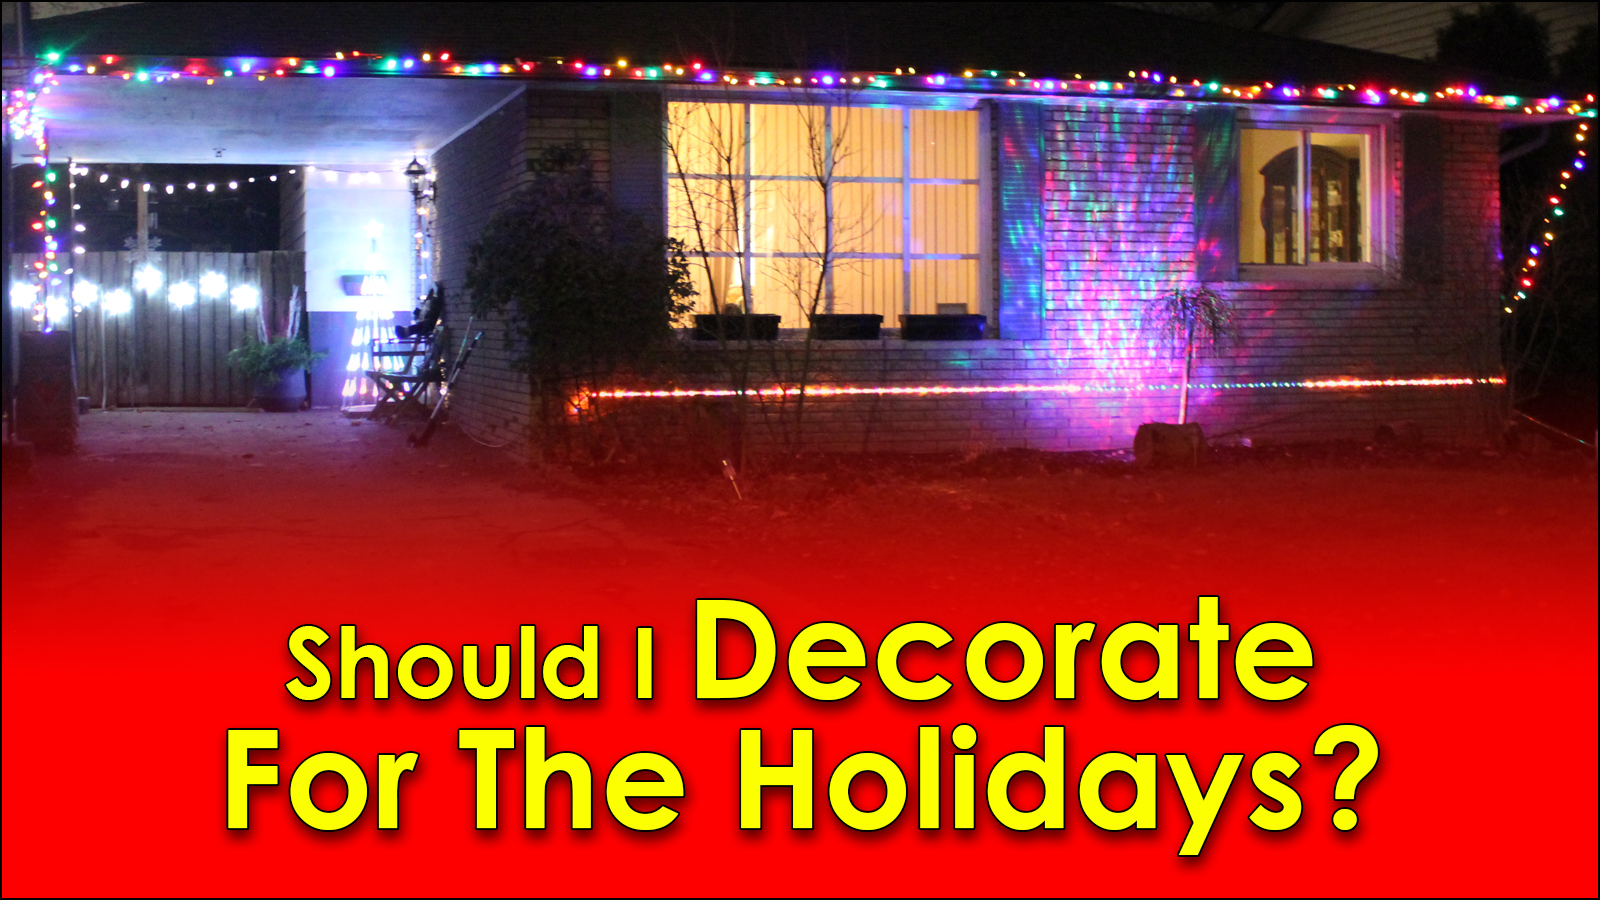 Should I decorate for the holidays?